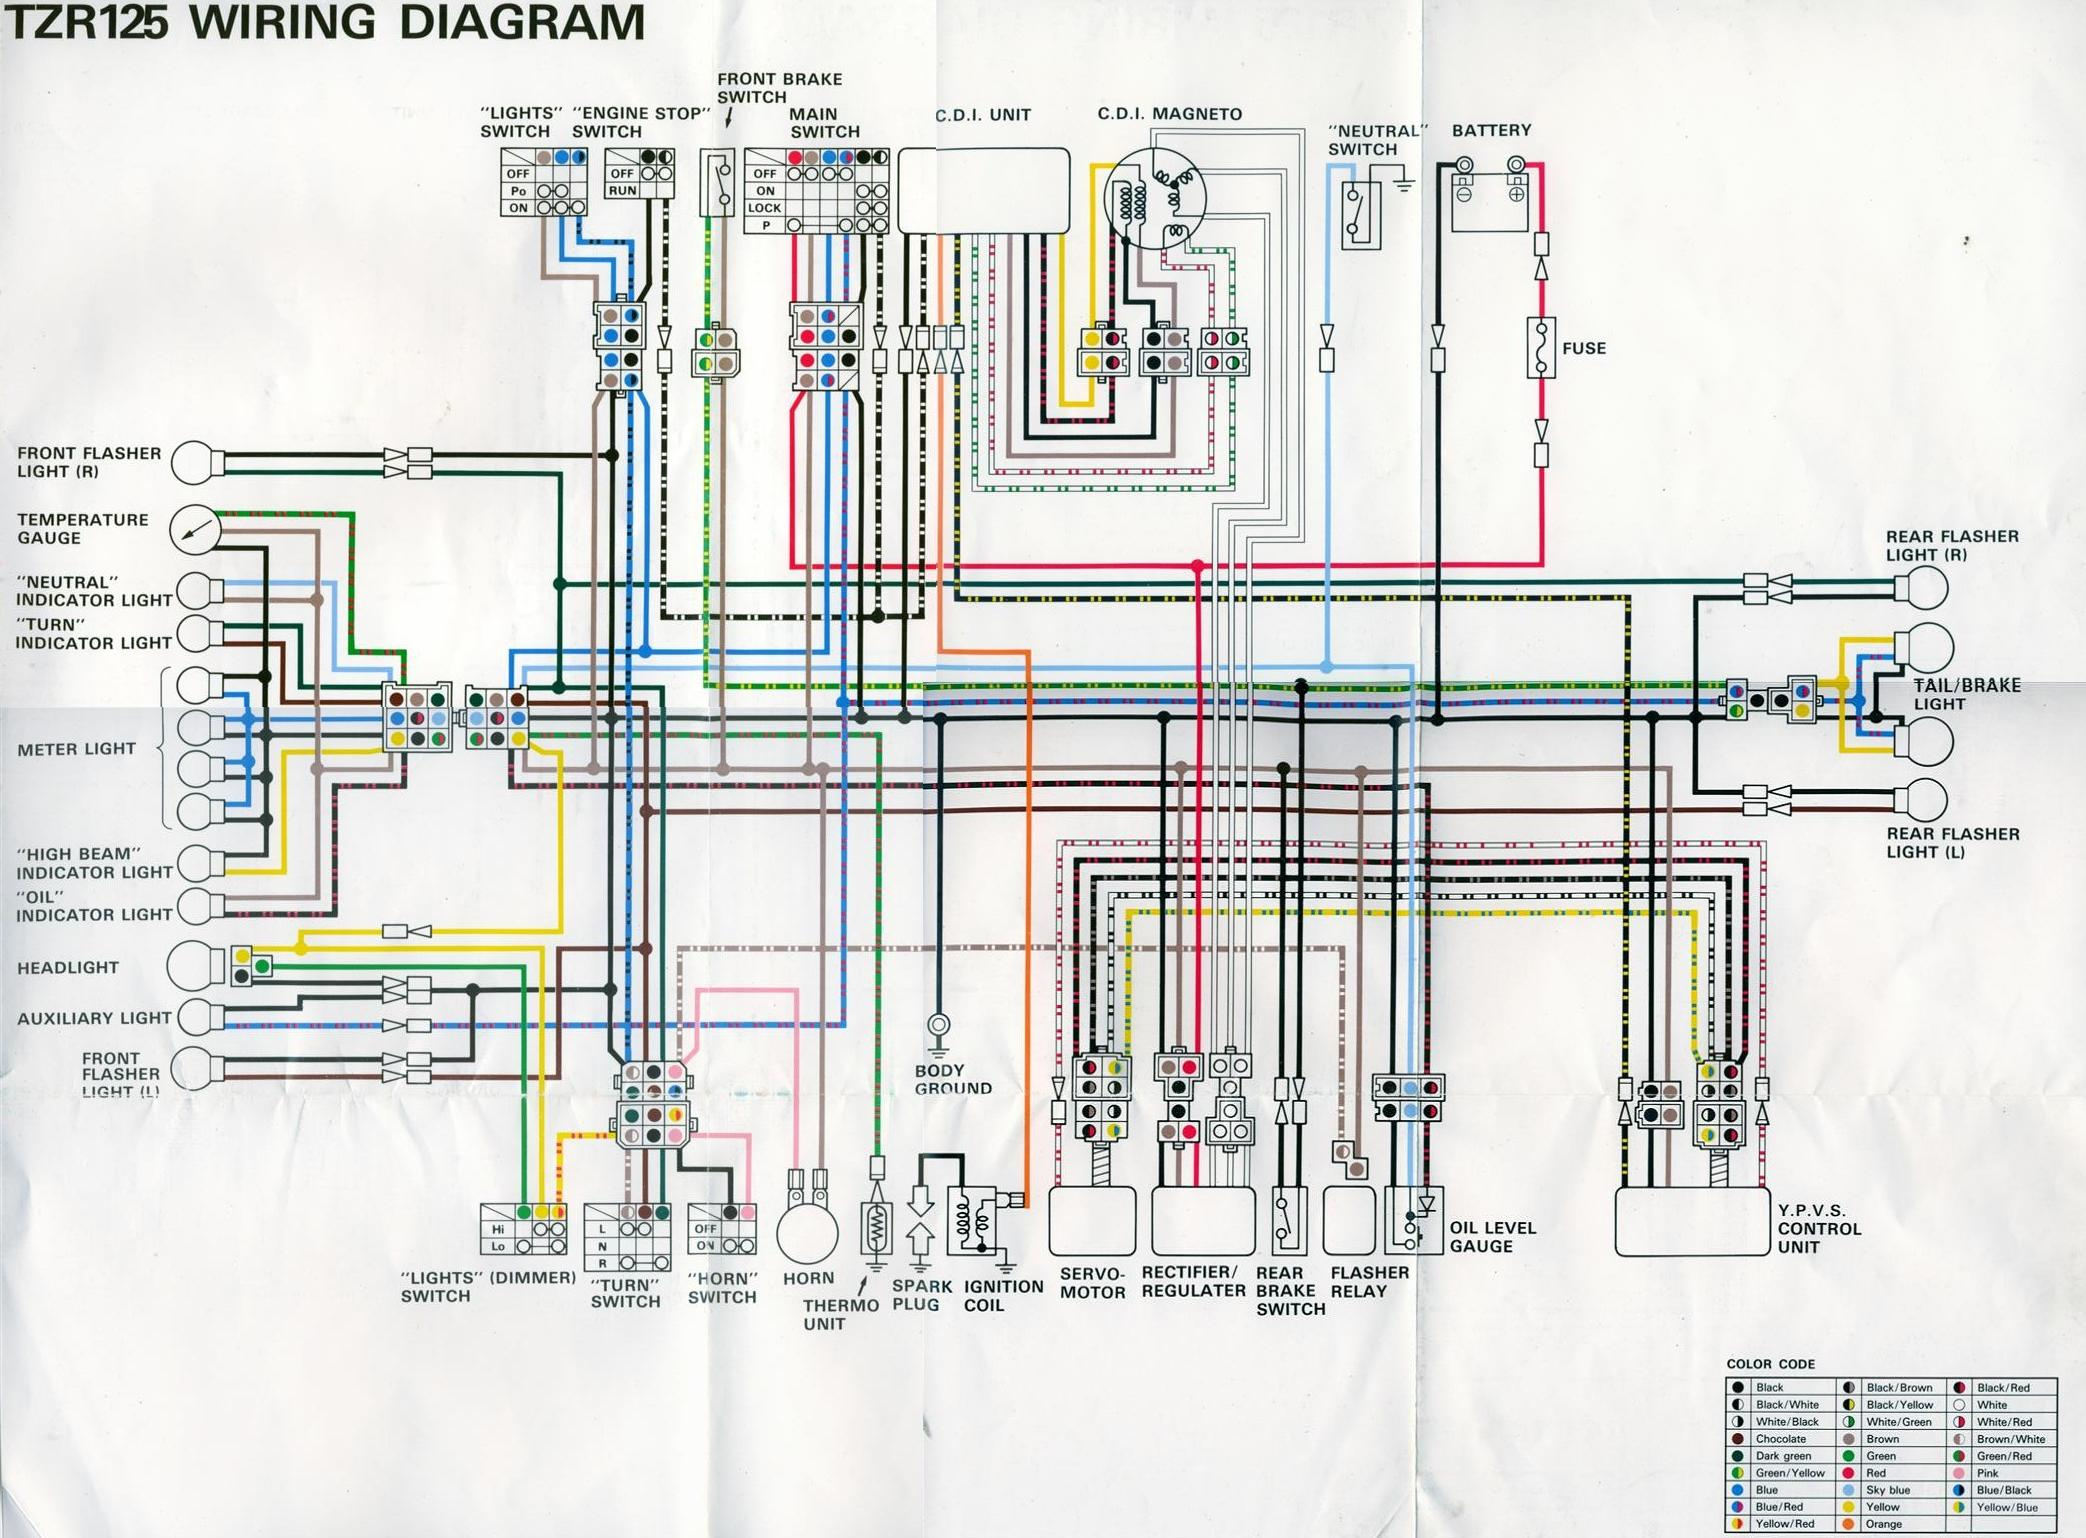 Chinese 125 Wiring Diagram on 125cc Chinese Atv Wiring Diagram